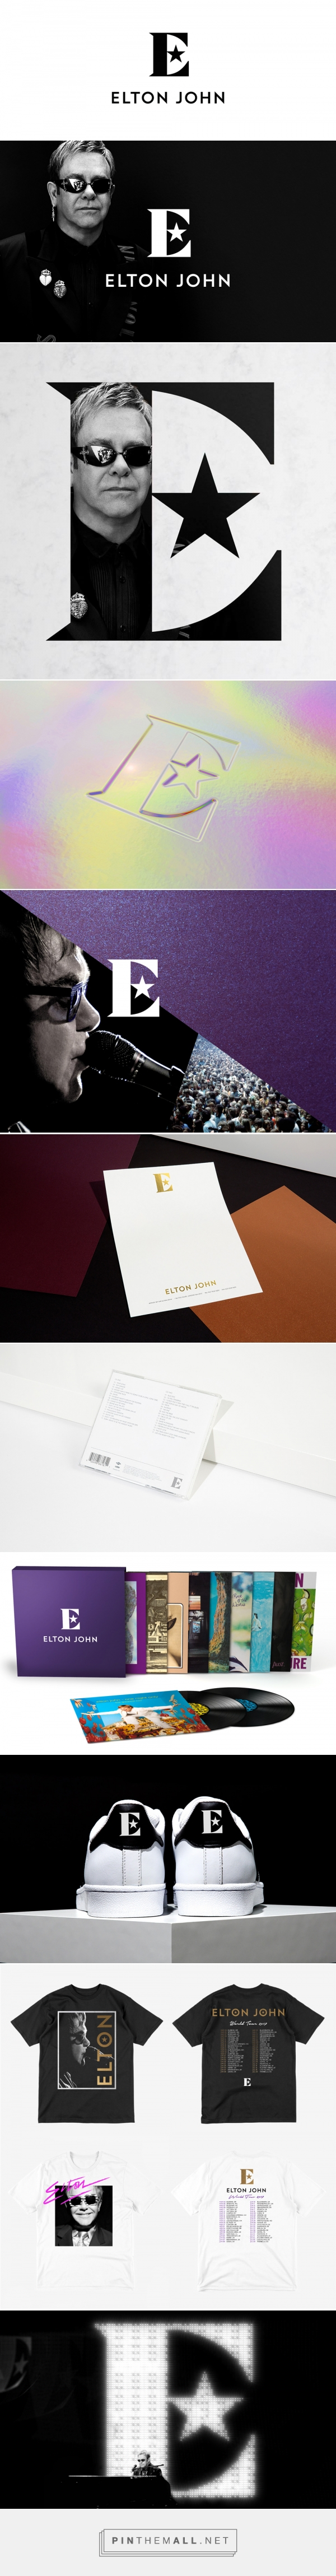 Brand New: New Logo and Identity for Sir Elton John by George Adams - created via https://pinthemall.net